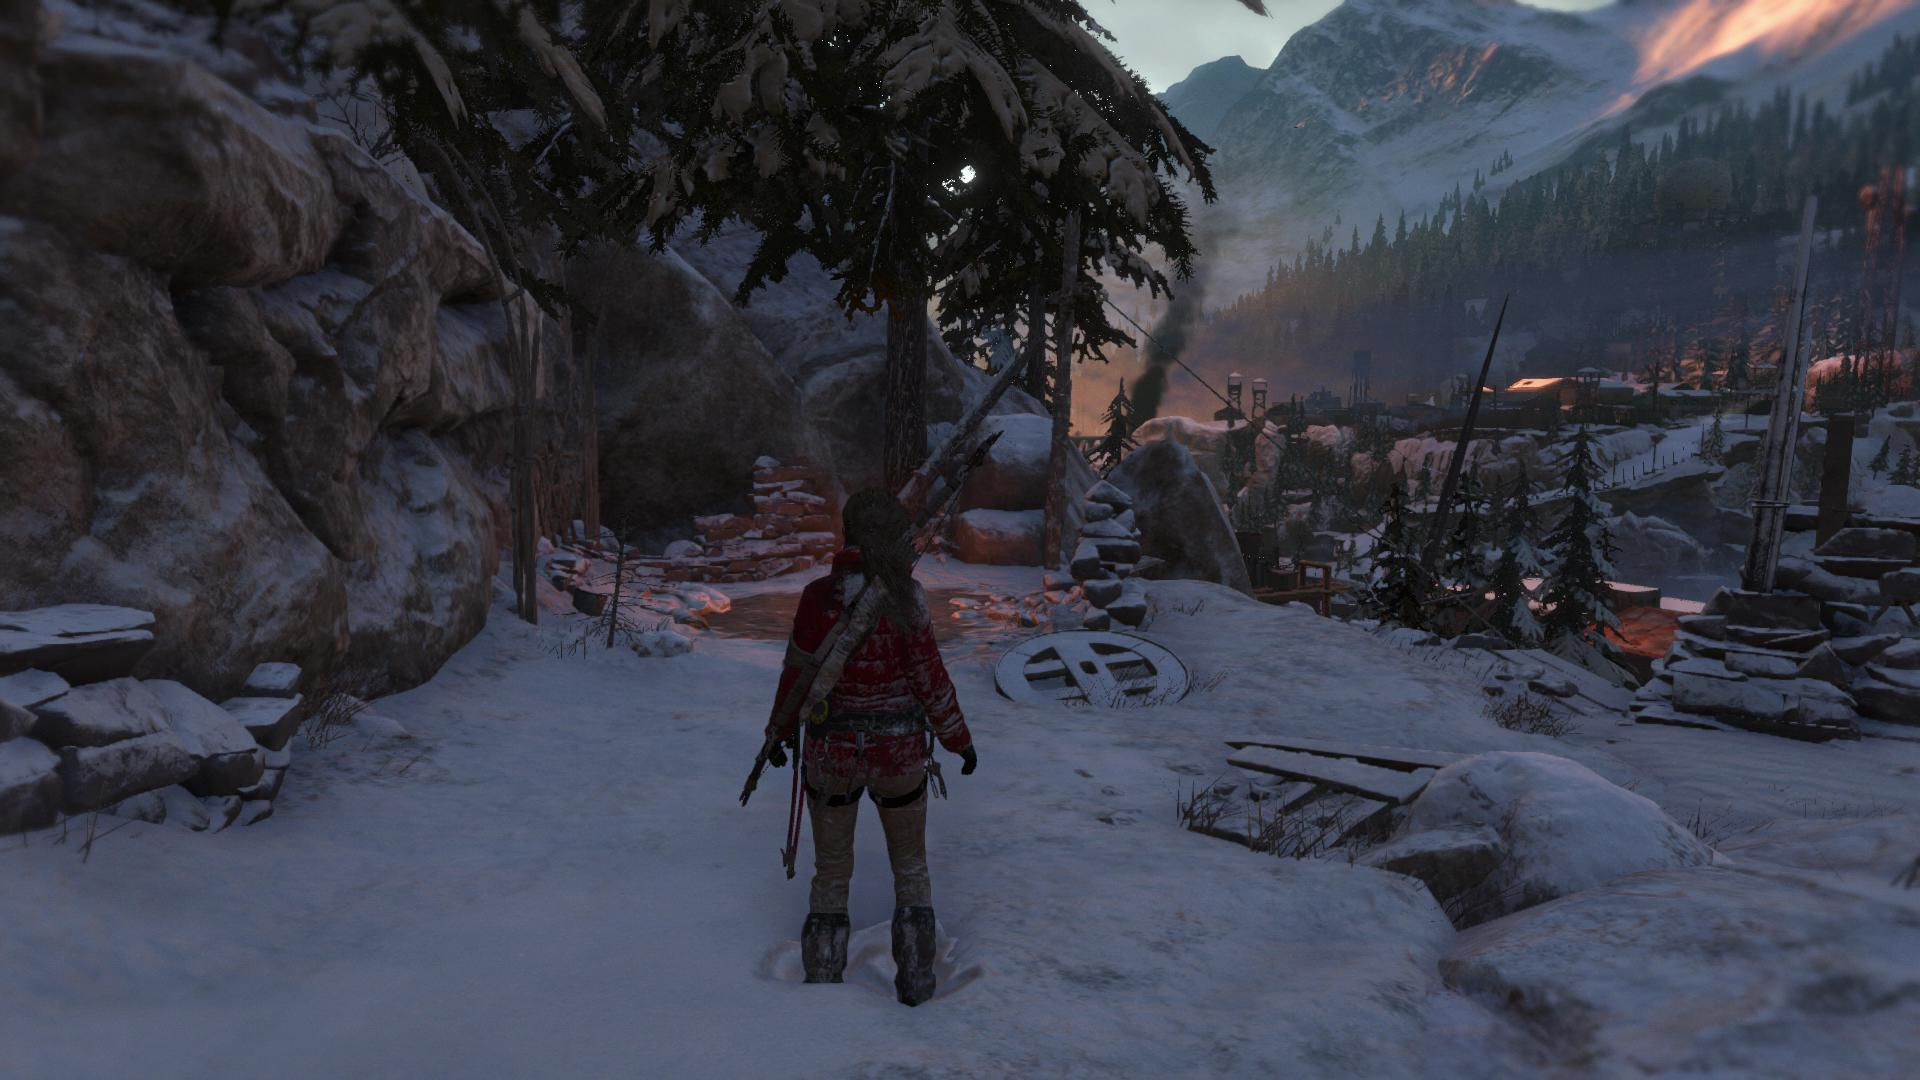 http://mygaming.co.za/news/wp-content/uploads/2015/09/Rise-of-the-Tomb-Raider-Preview-Screenshot-31.jpg